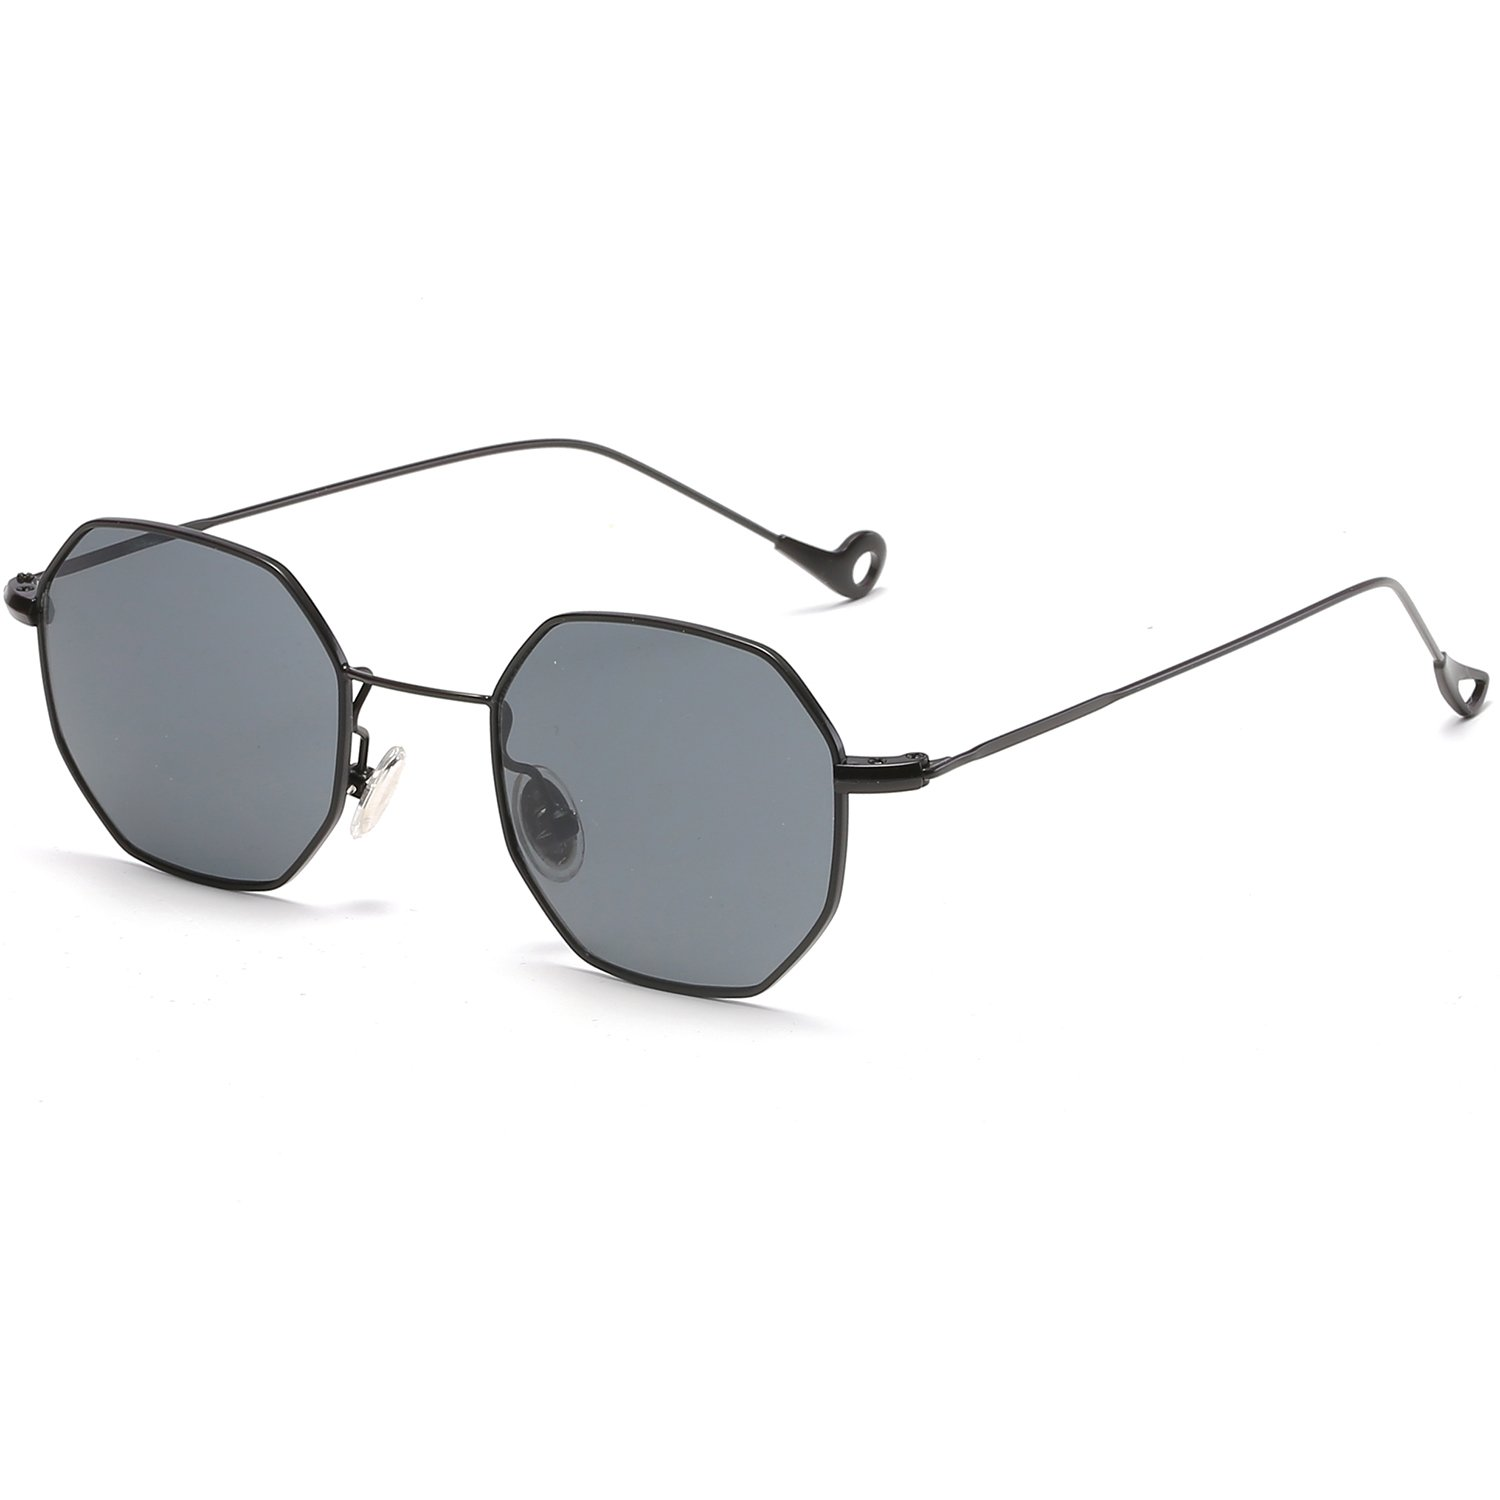 38b54222beb8 Trends Women Sunglasses Small Frame Polygon Clear Lens Sunglasses Brand Designer  Men Vintage Sun Glasses Hexagon Metal Frame  Amazon.co.uk  Clothing